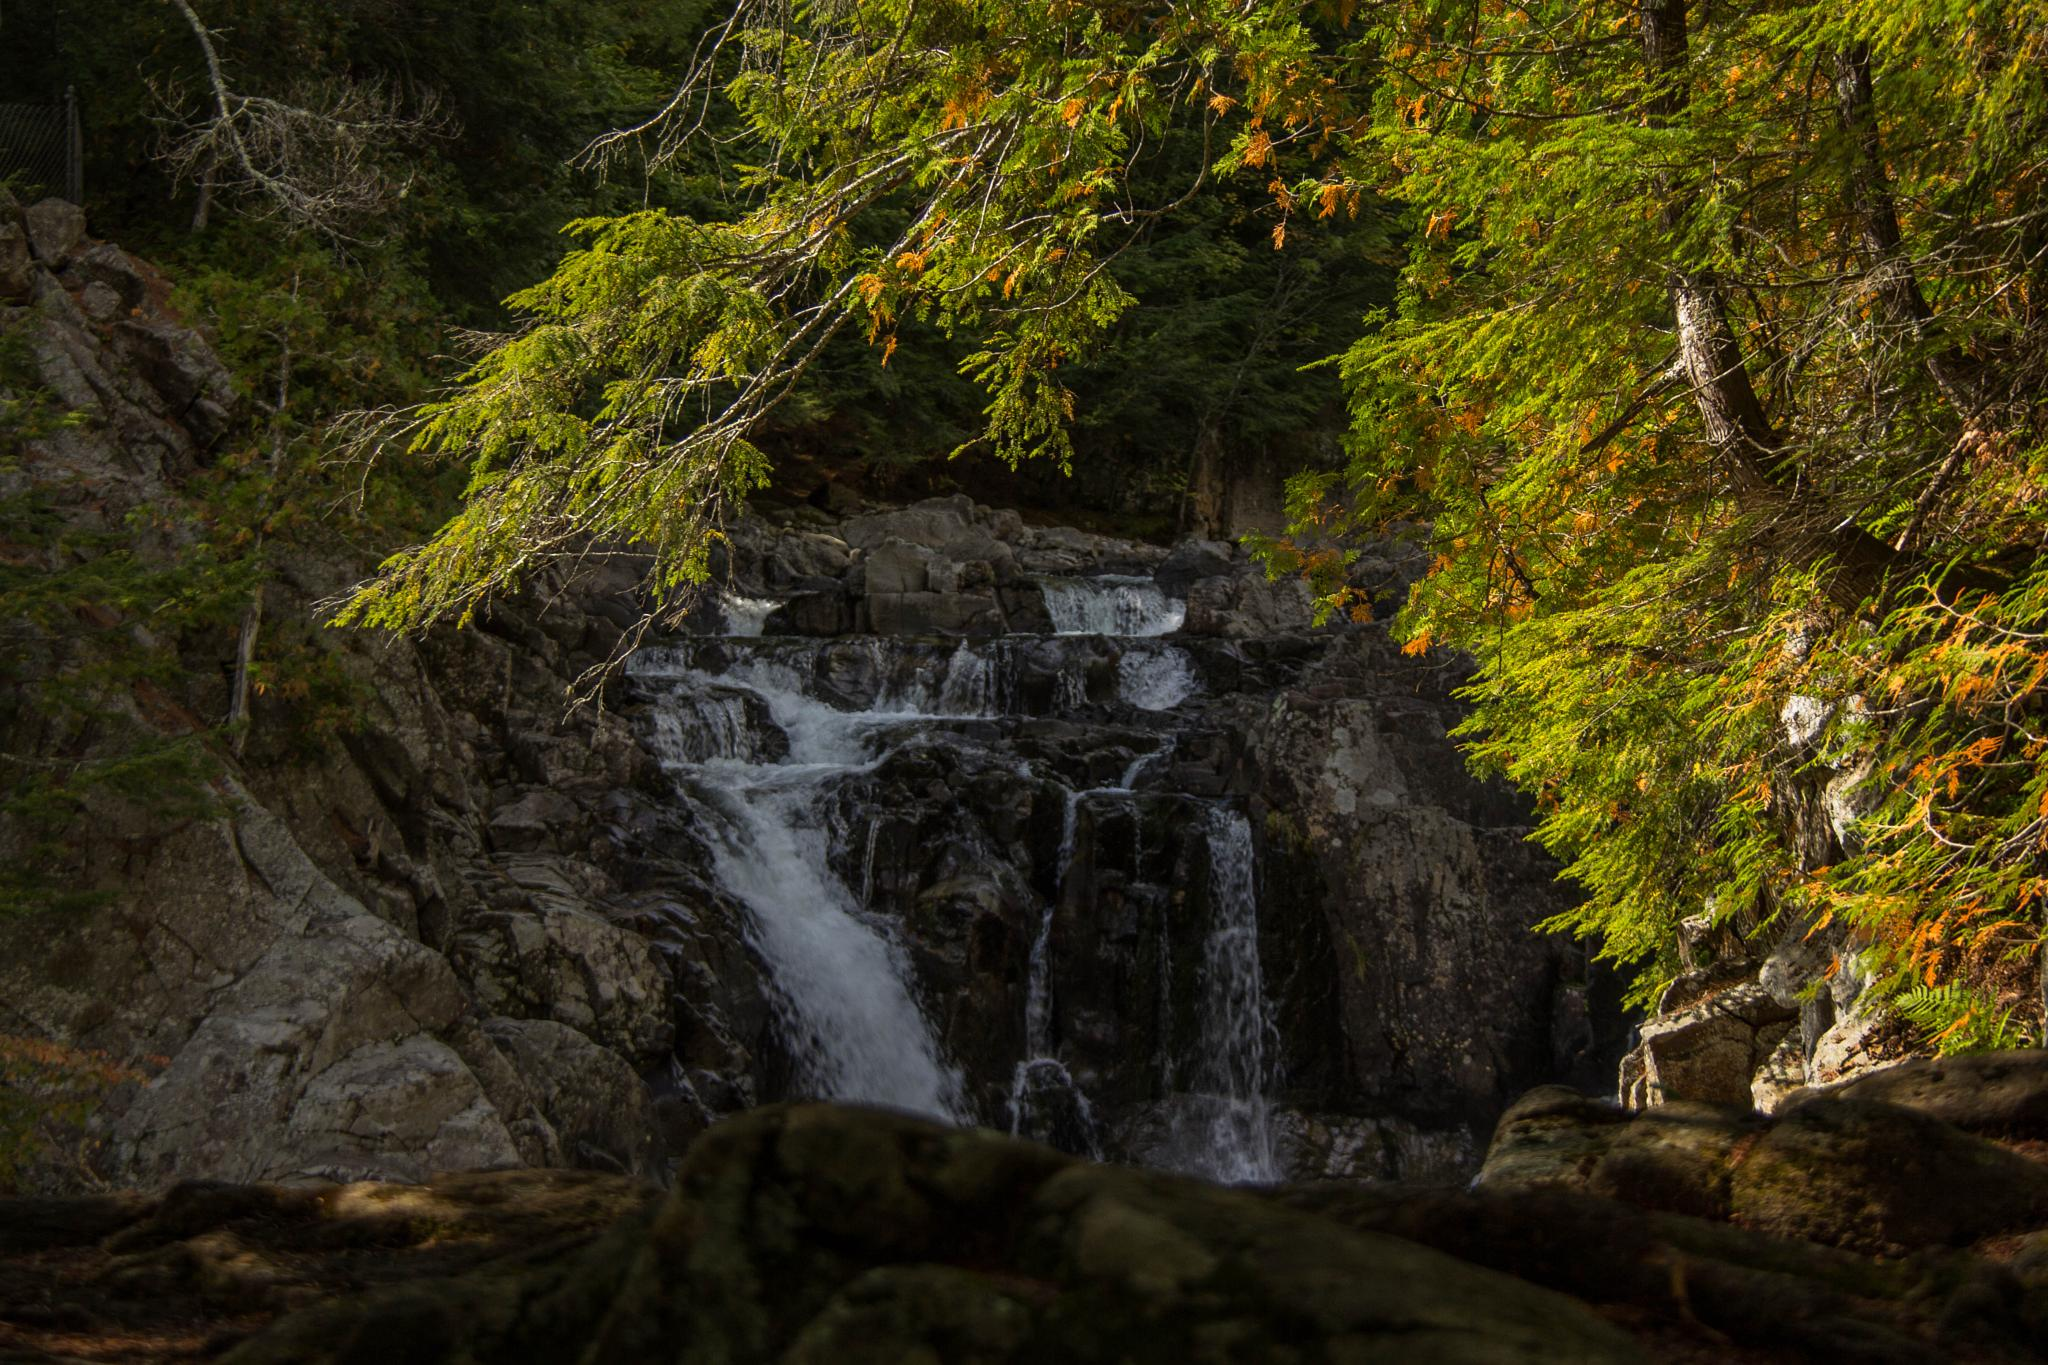 The Adirondack Waterfall by Roland R Kemler